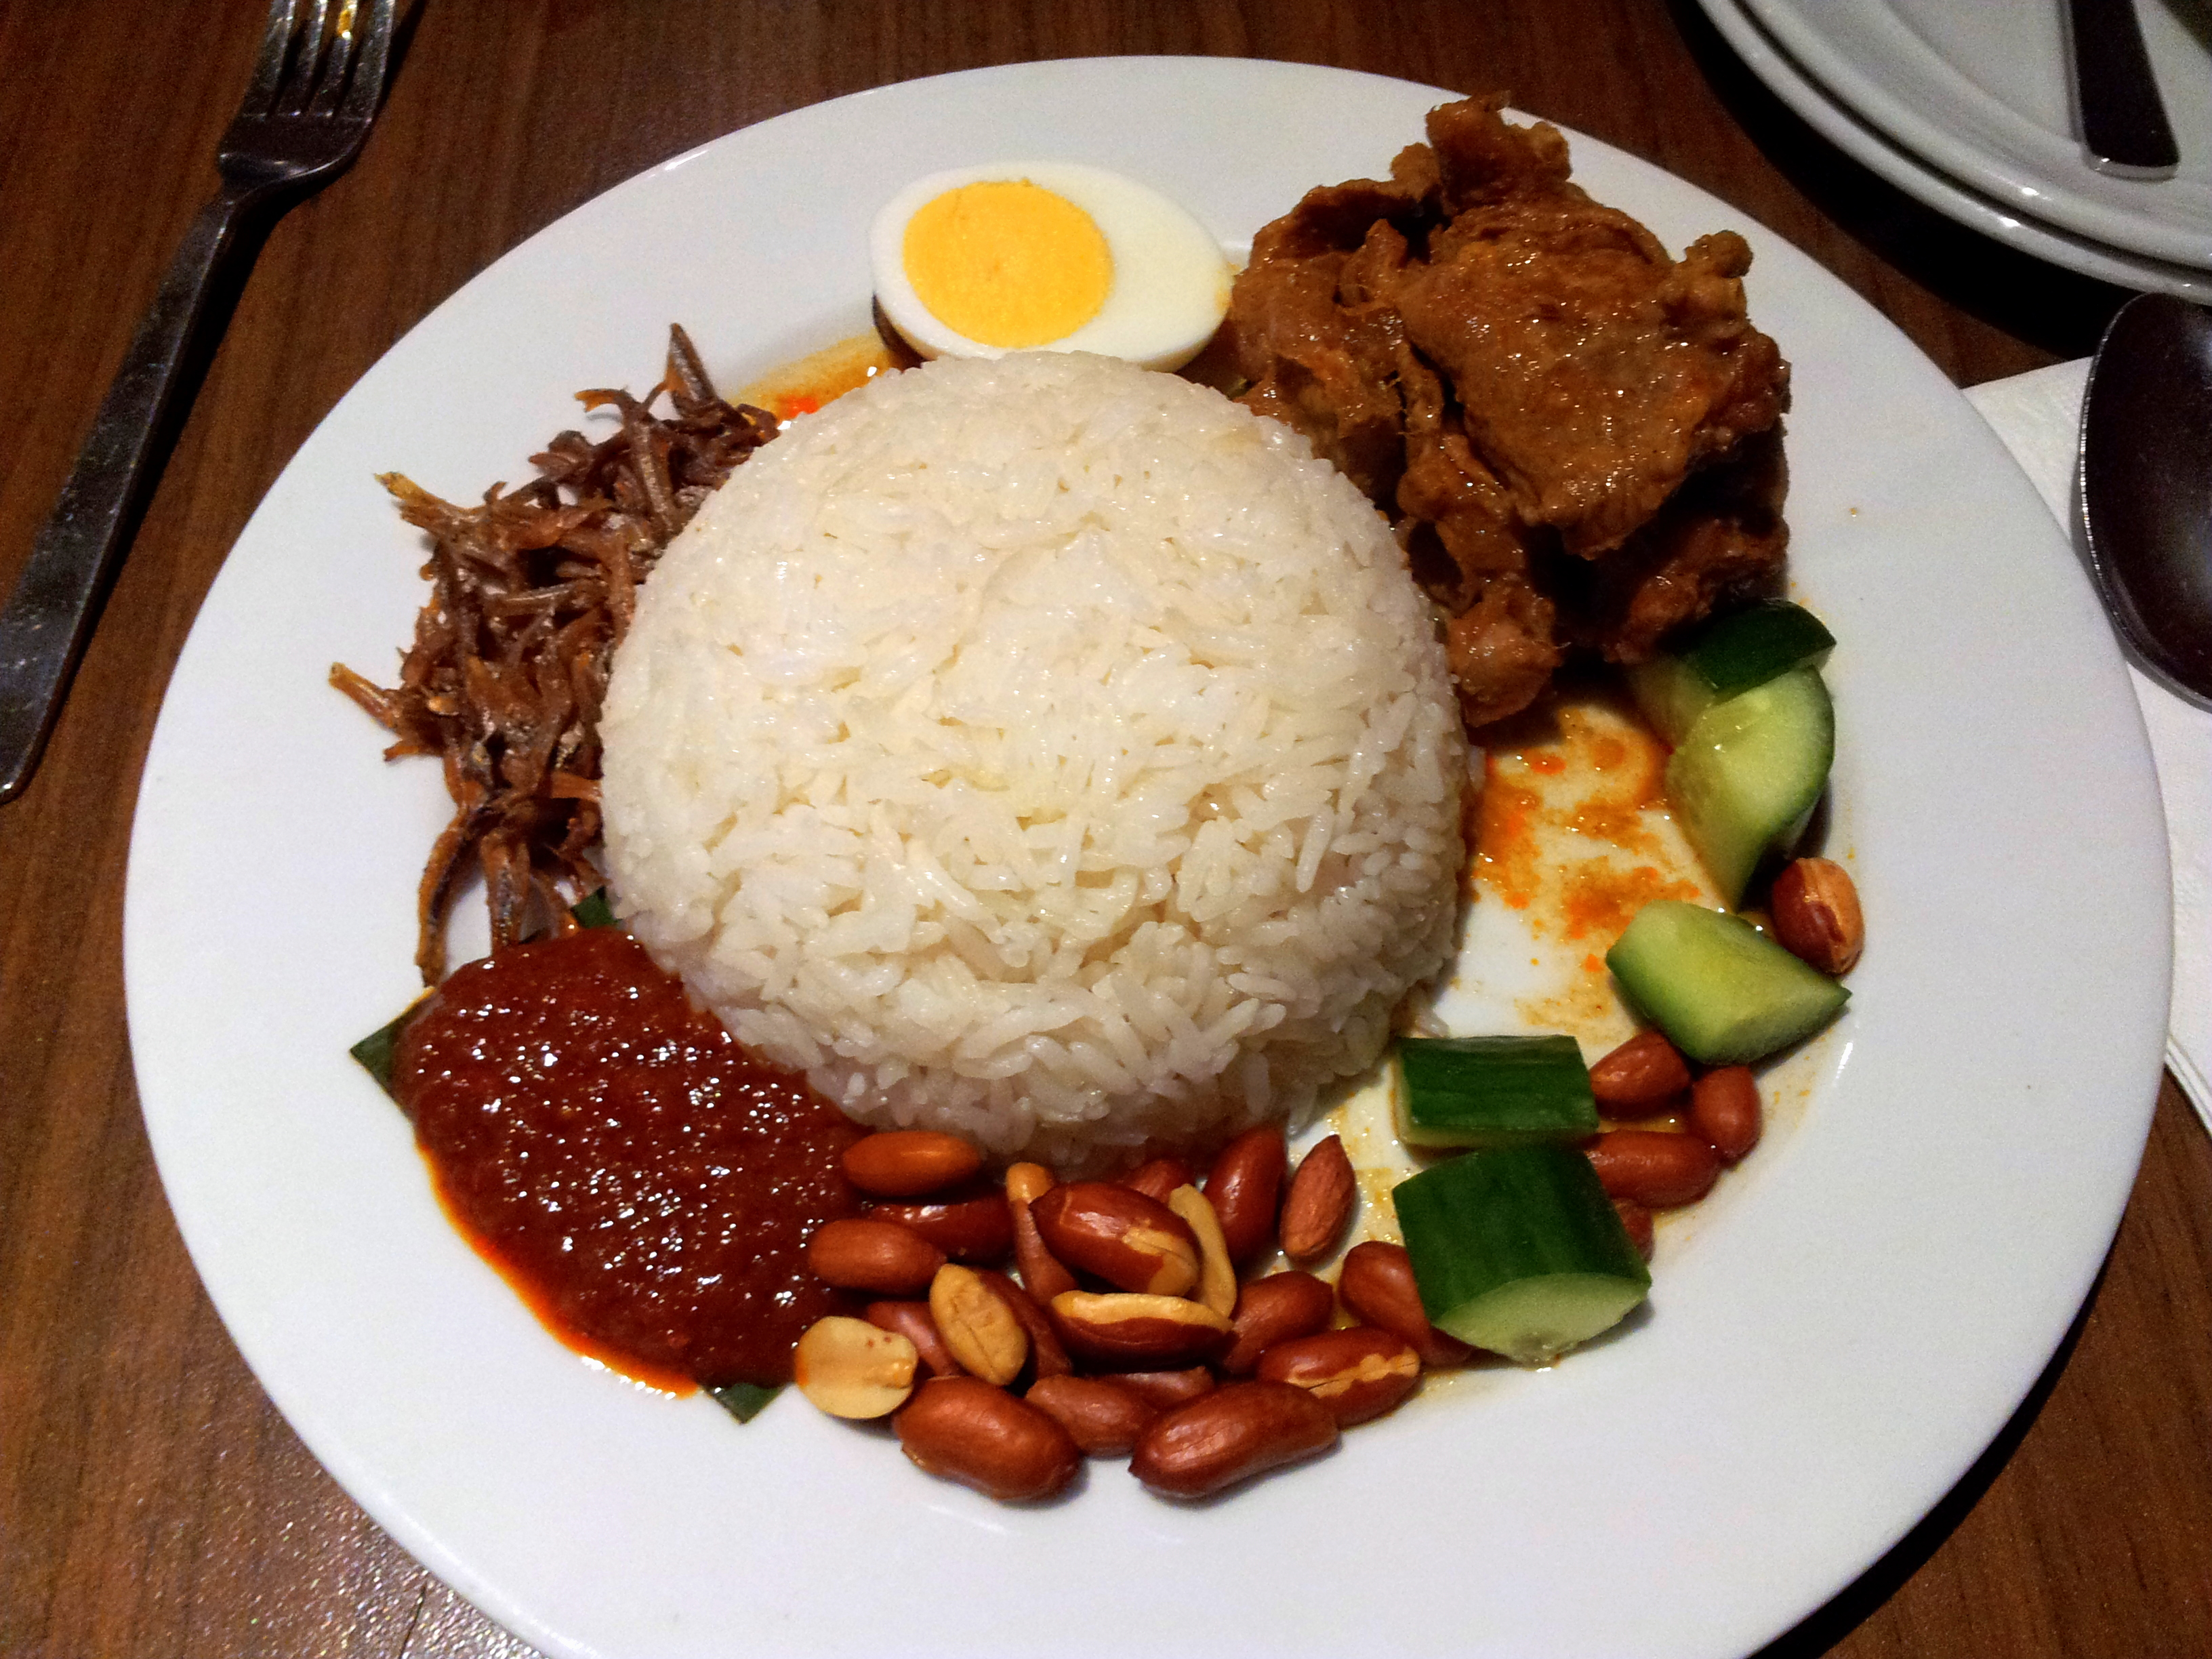 Basmati rice with side dish of chili sauce, cucumber, nuts, chicken, egg and dried fish